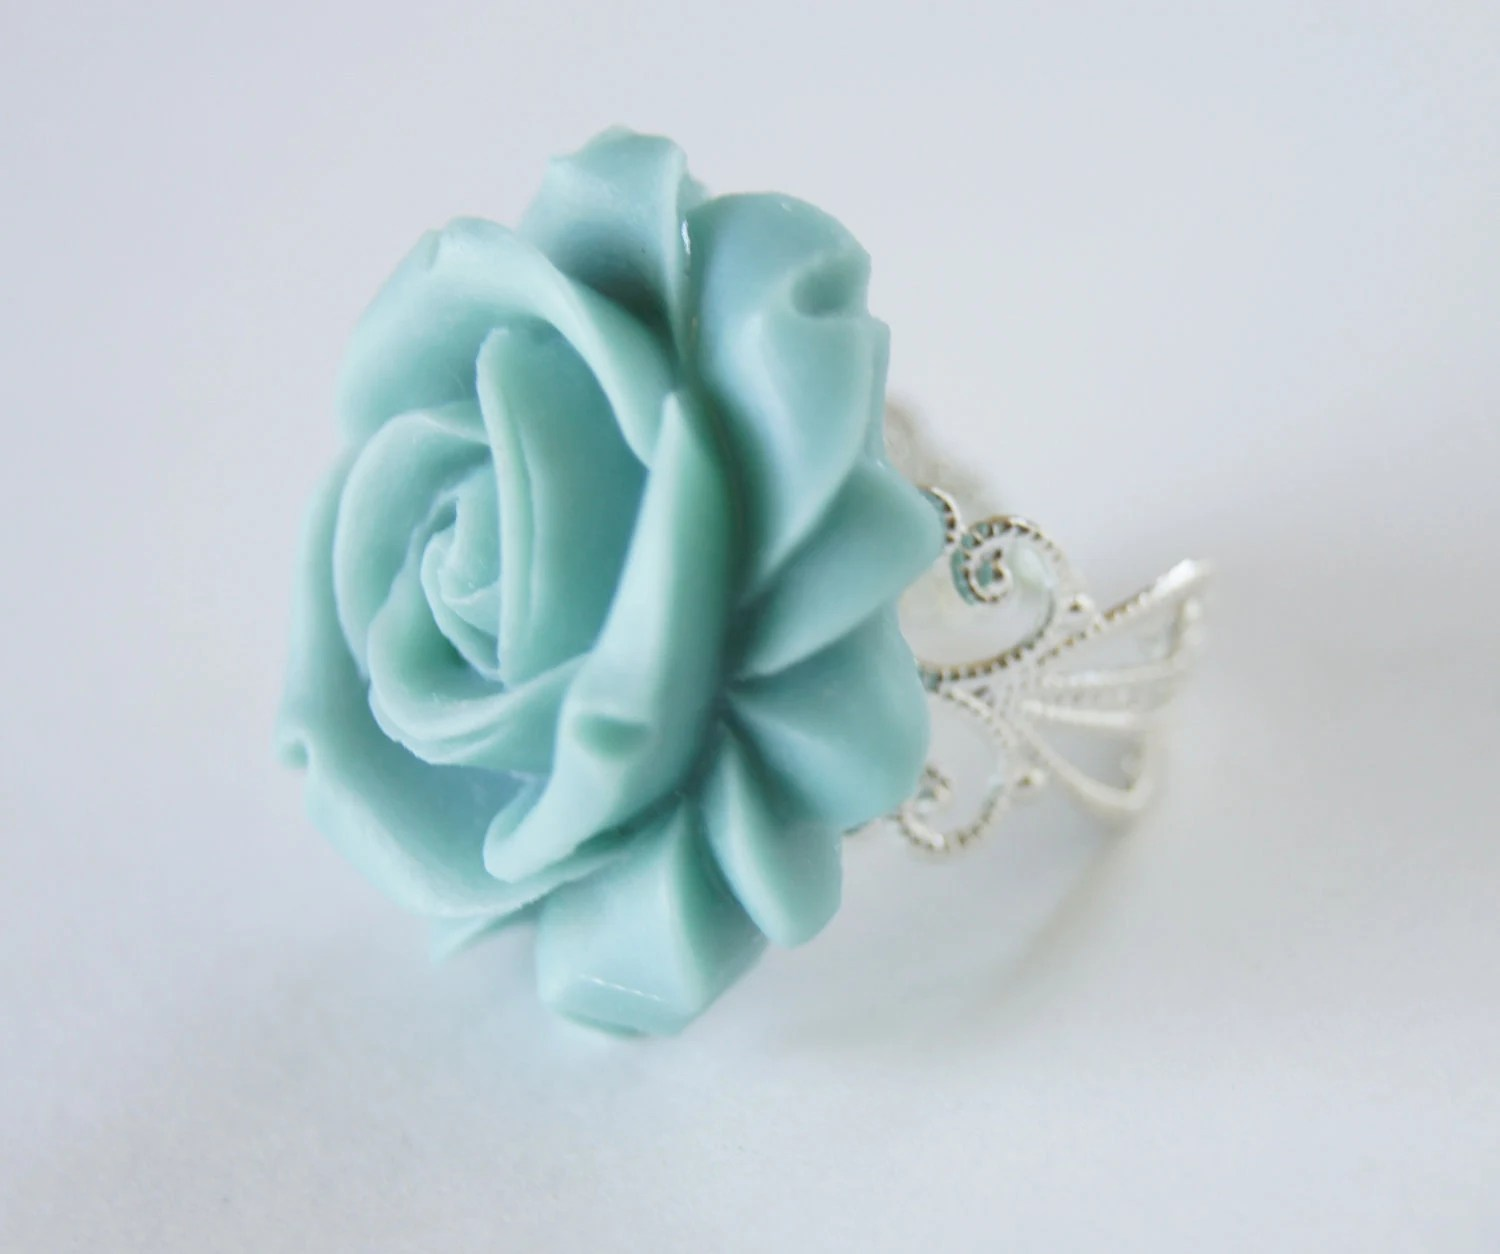 Blue Resin Rose Flower Silver Metal Vintage Inspired Adjustable Ring, Bridesmaids, Spring Fashion, Wedding, Bridal Jewelry